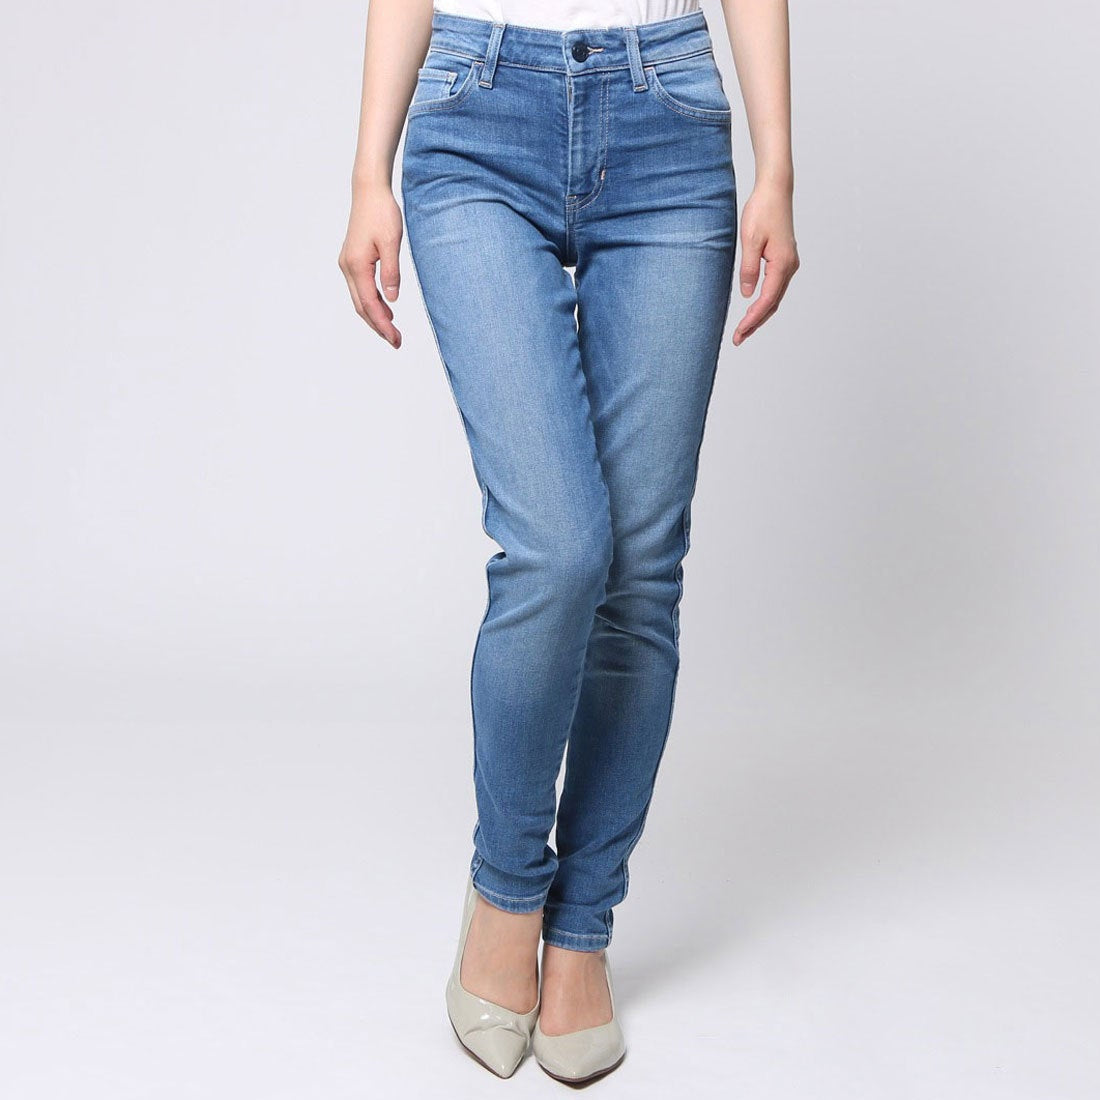 Guess Women 1981 Skinny Jeans in Sky Blue Wash